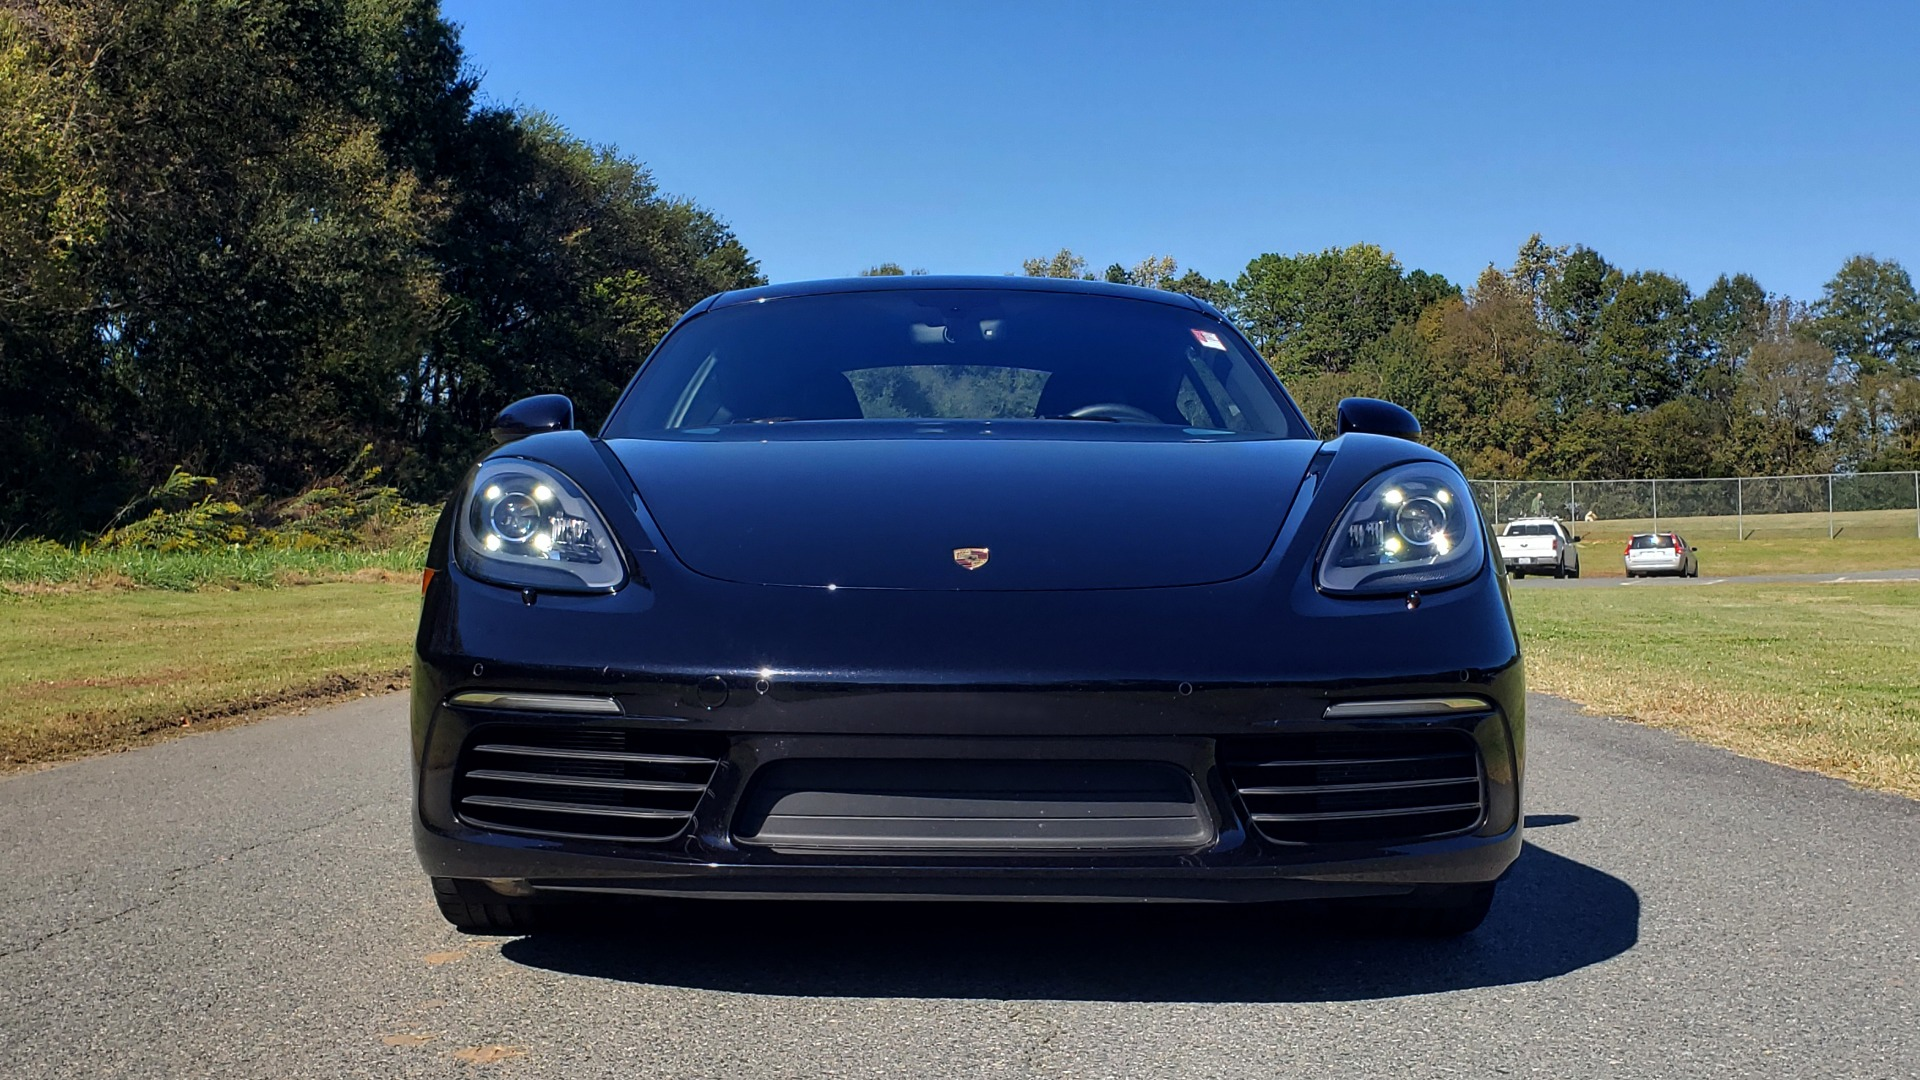 Used 2019 Porsche 718 CAYMAN S COUPE / PDK TRANS / LCA / BOSE / HTD STS / LIGHT DESIGN PKG for sale $67,999 at Formula Imports in Charlotte NC 28227 18